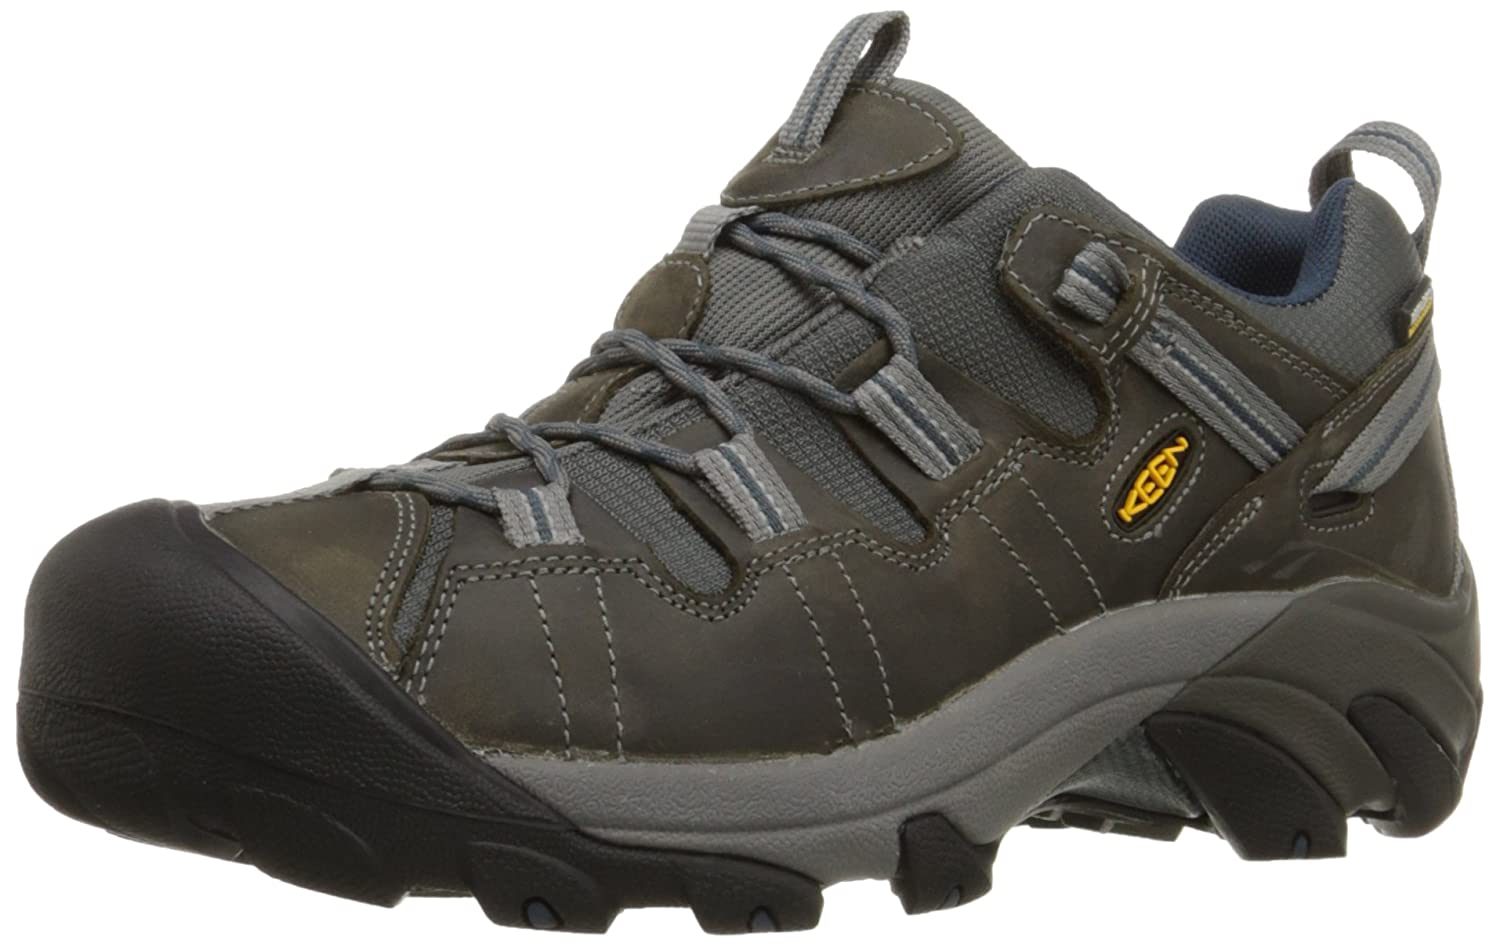 Keen Men's TARGHEE II WP Hiking Shoes Keen Adults - US SHOES 1008417